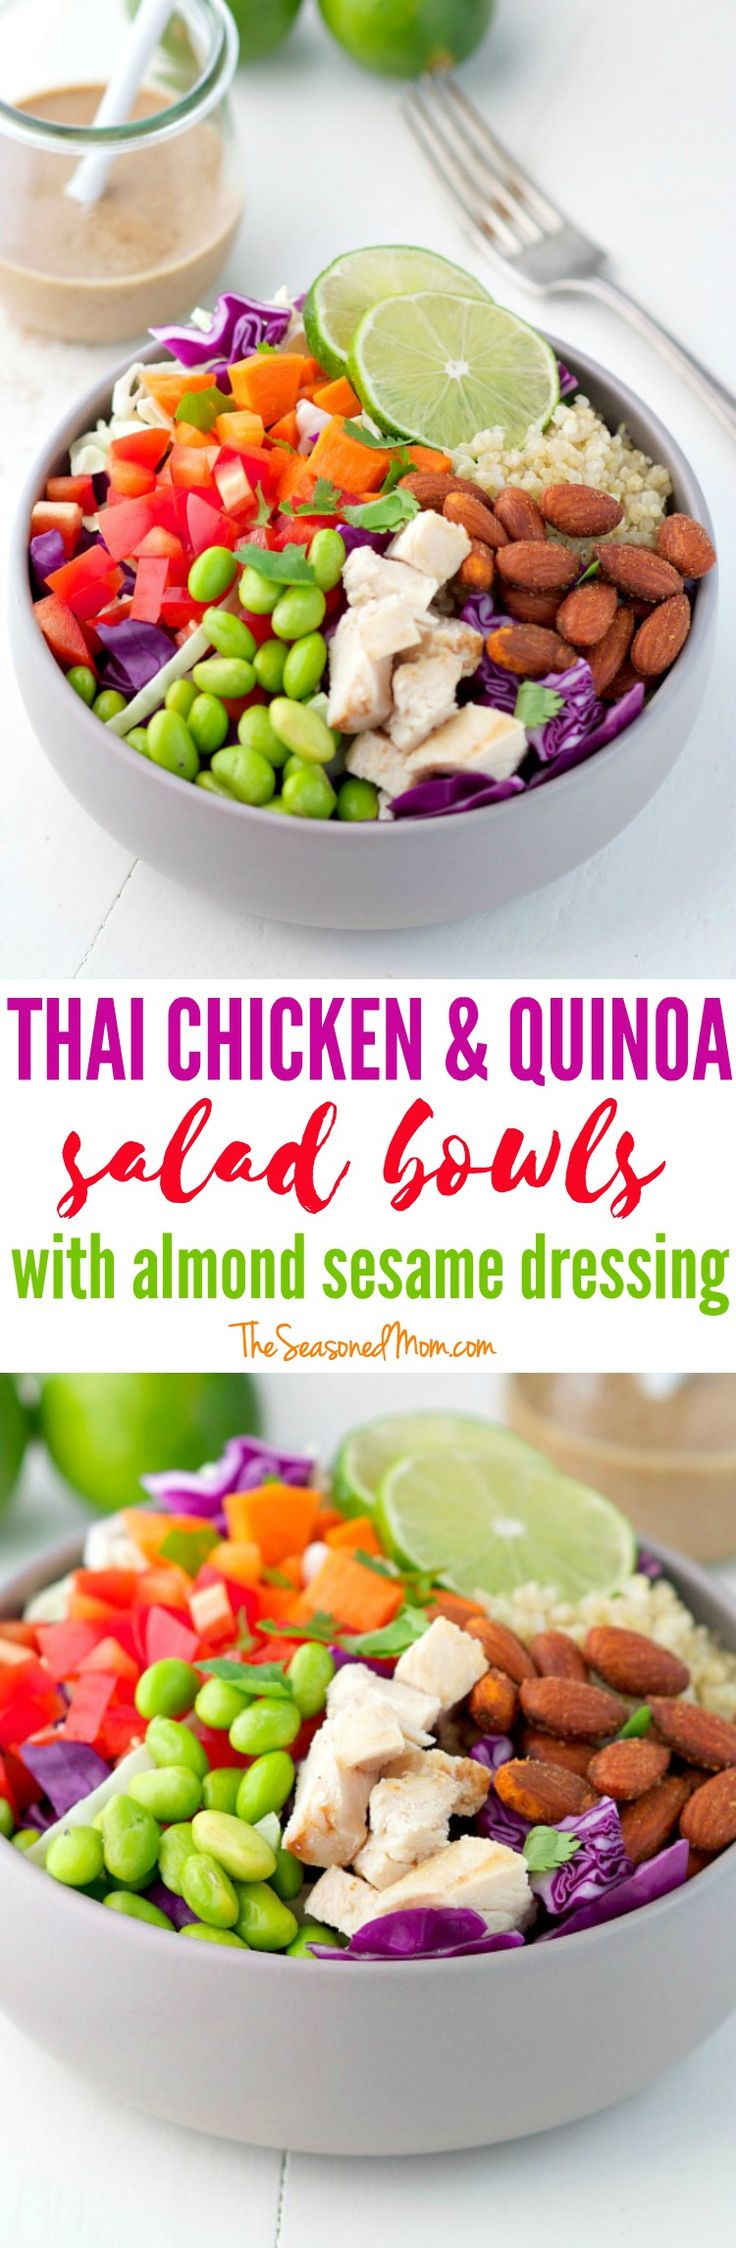 Thai Chicken and Quinoa Salad Bowls